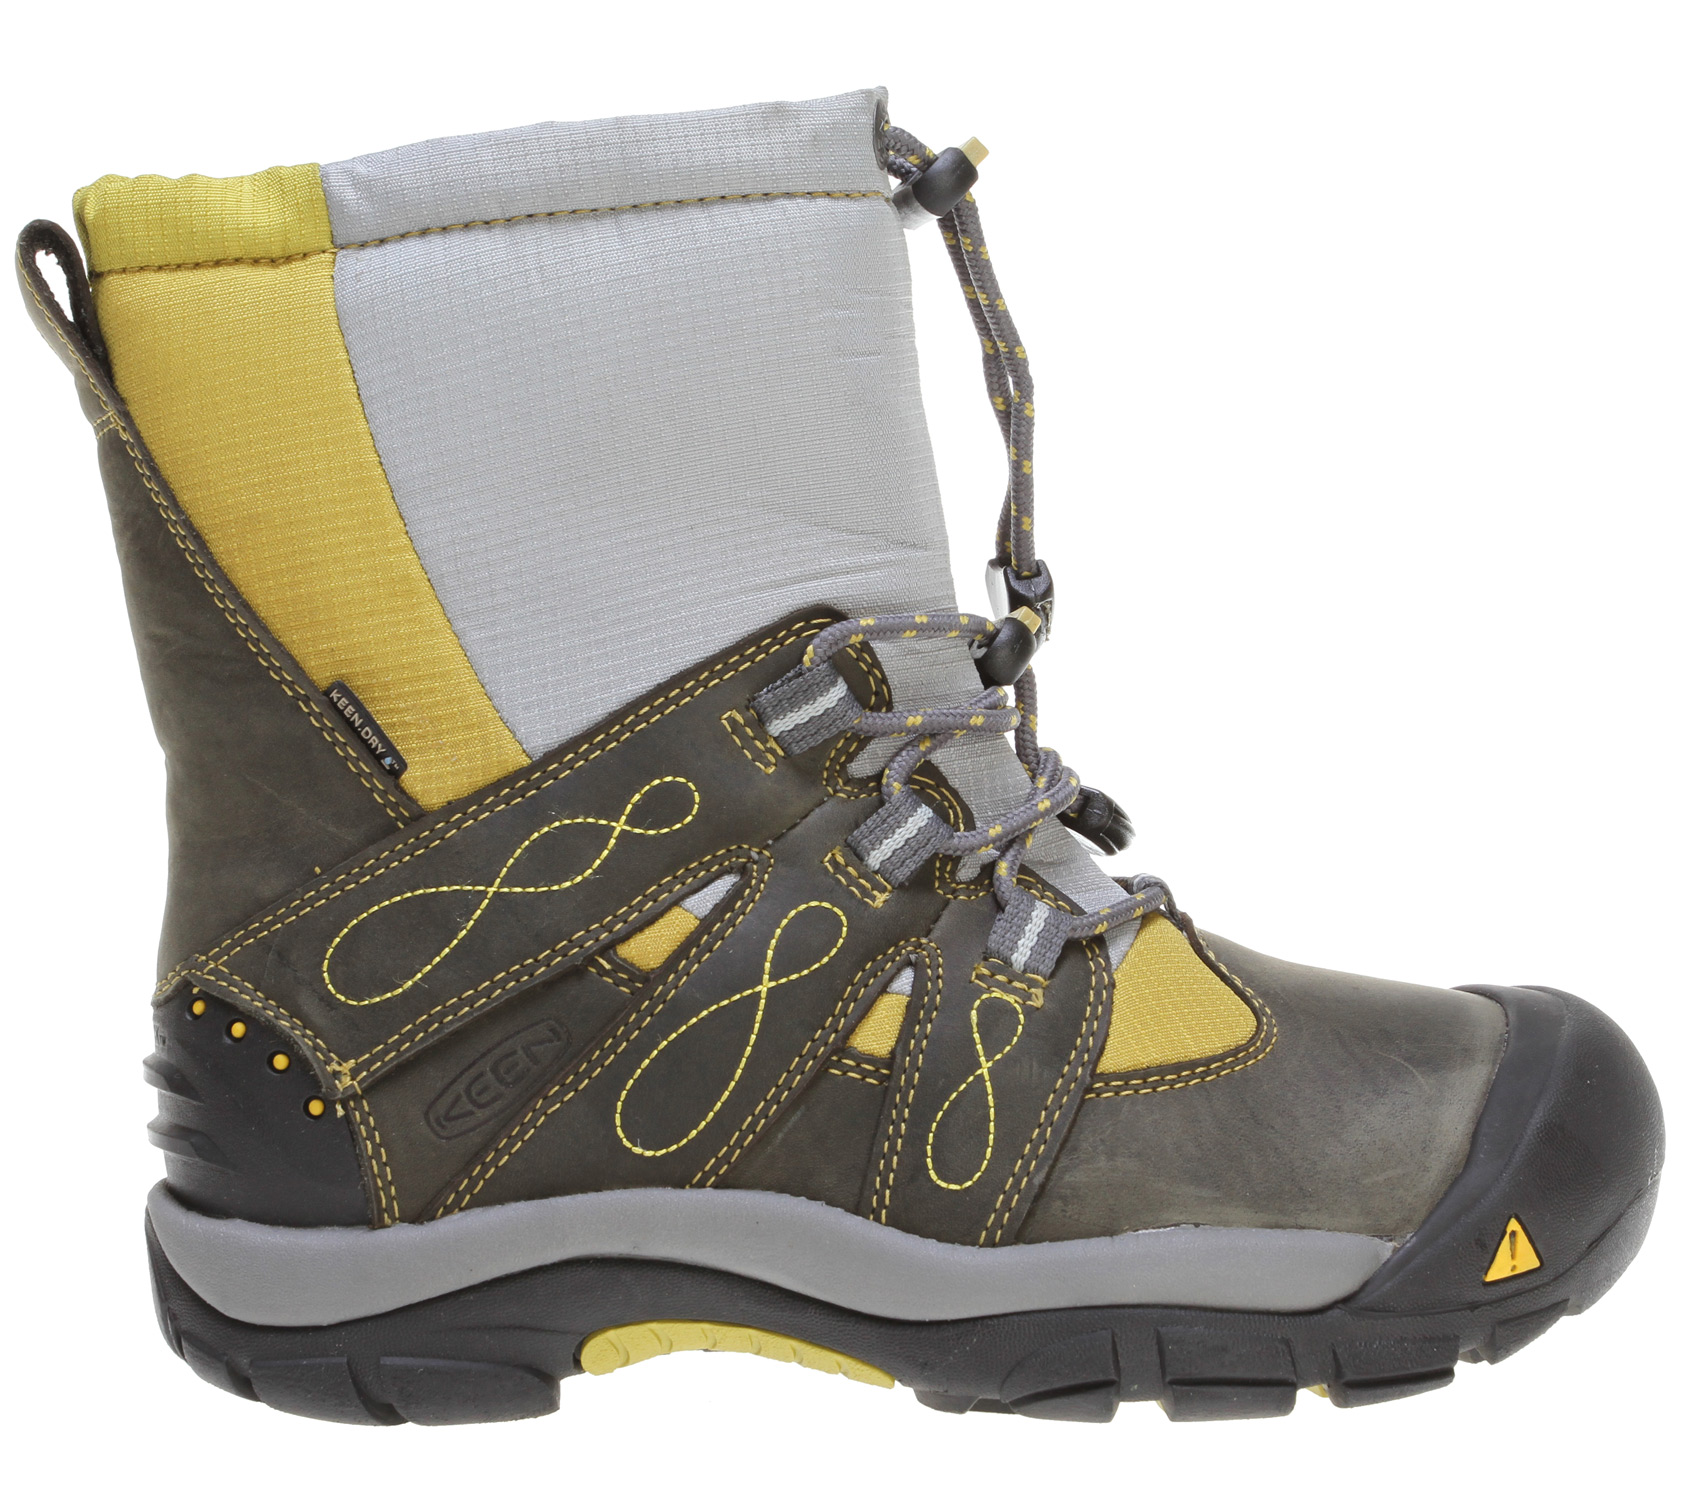 Camp and Hike When the weather outside is frightful, let the Brixen Boot delight your toes with 400g of KEEN.WARM insulation, a cozy wool felt lining and a thermal heat shield footbed. Snow, sleet or freezing rain, the KEEN.DRY waterproof membrane keeps the boot dry, so your feet stay comfortable. Let it snow!Key Features of the Keen Brixen Boots: Fit Tip: We find this style runs about a 1/2 size small. Lining: Wool Felt Upper: Abrasion resistant and breathable textile mesh upper Rubber: Dual climate rubber Activities: Hiking, Snow Type: Boots: Cold - insulated, Wet - waterproof 400g KEEN.Warm upper insulation Abrasion resistant and breathable textile mesh upper Compression molded EVA midsole Dual climate and ice traction rubber outsole KEEN.DRY waterproof breathable membrane Patented toe protection Shellback heel support Thermal heat shield footbed TPU stability shank Waterproof nubuck upper Wool felt lining KEEN.DRY: A proprietary waterproof, breathable membrane that lets vapor out without letting water in. KEEN.WARM: A lightweight insulation that keeps you warm. Who knew charcoal bamboo could create something that keeps your feet warm? But it makes KEEN.WARM a lightweight, anti microbial insulation that provides warmth where you need it most. KEEN.DCR: The KEEN Dual Climate Rubber outsole hardens in cold weather to bite into packed snow - all in the name of traction. THERMAL HEAT SHIELD FOOTBED: On the outside, wooly softness; in the middle, support cushioning; and inside, a thermal foil barrier to harness radiant heat. Keeps the cold out and the heat in. - $95.95